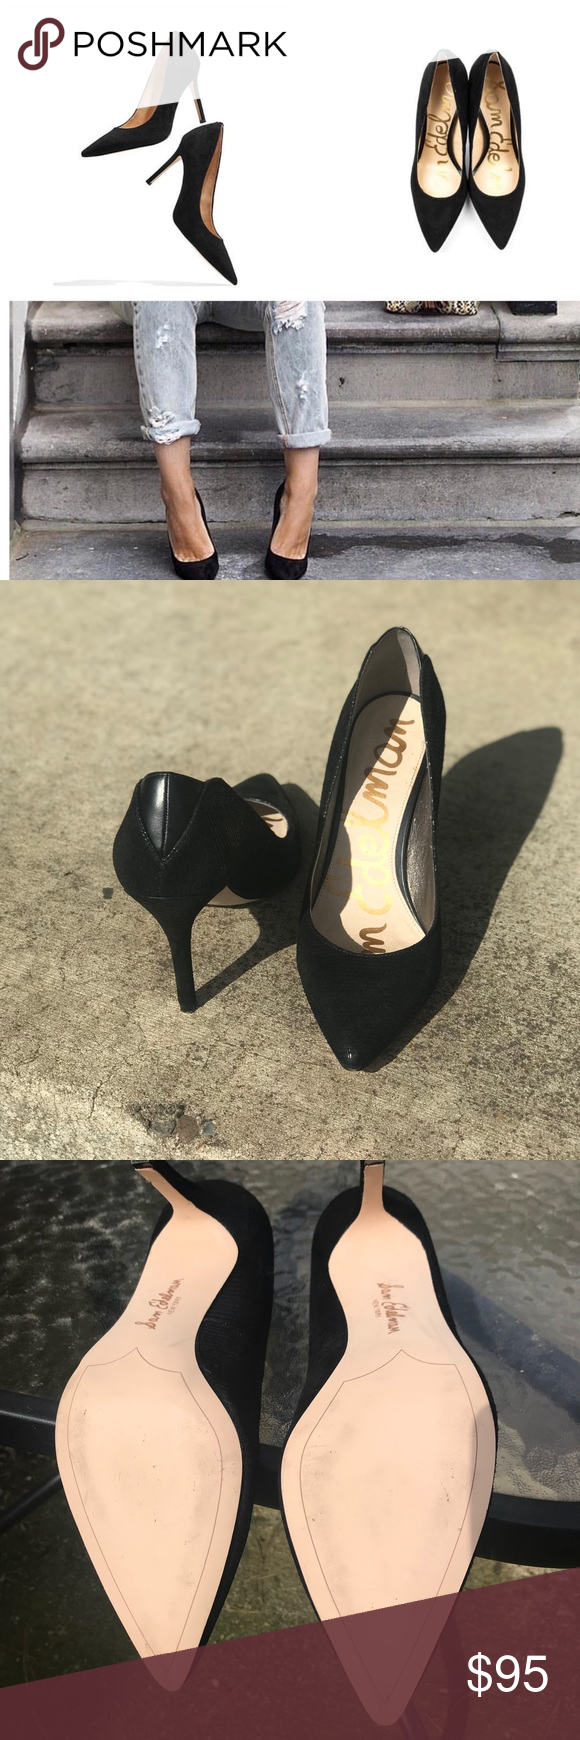 ab6cc9c17be Sam Edelman Hazel Pointy Toe Pumps NWOT tried on in the store and around  the house